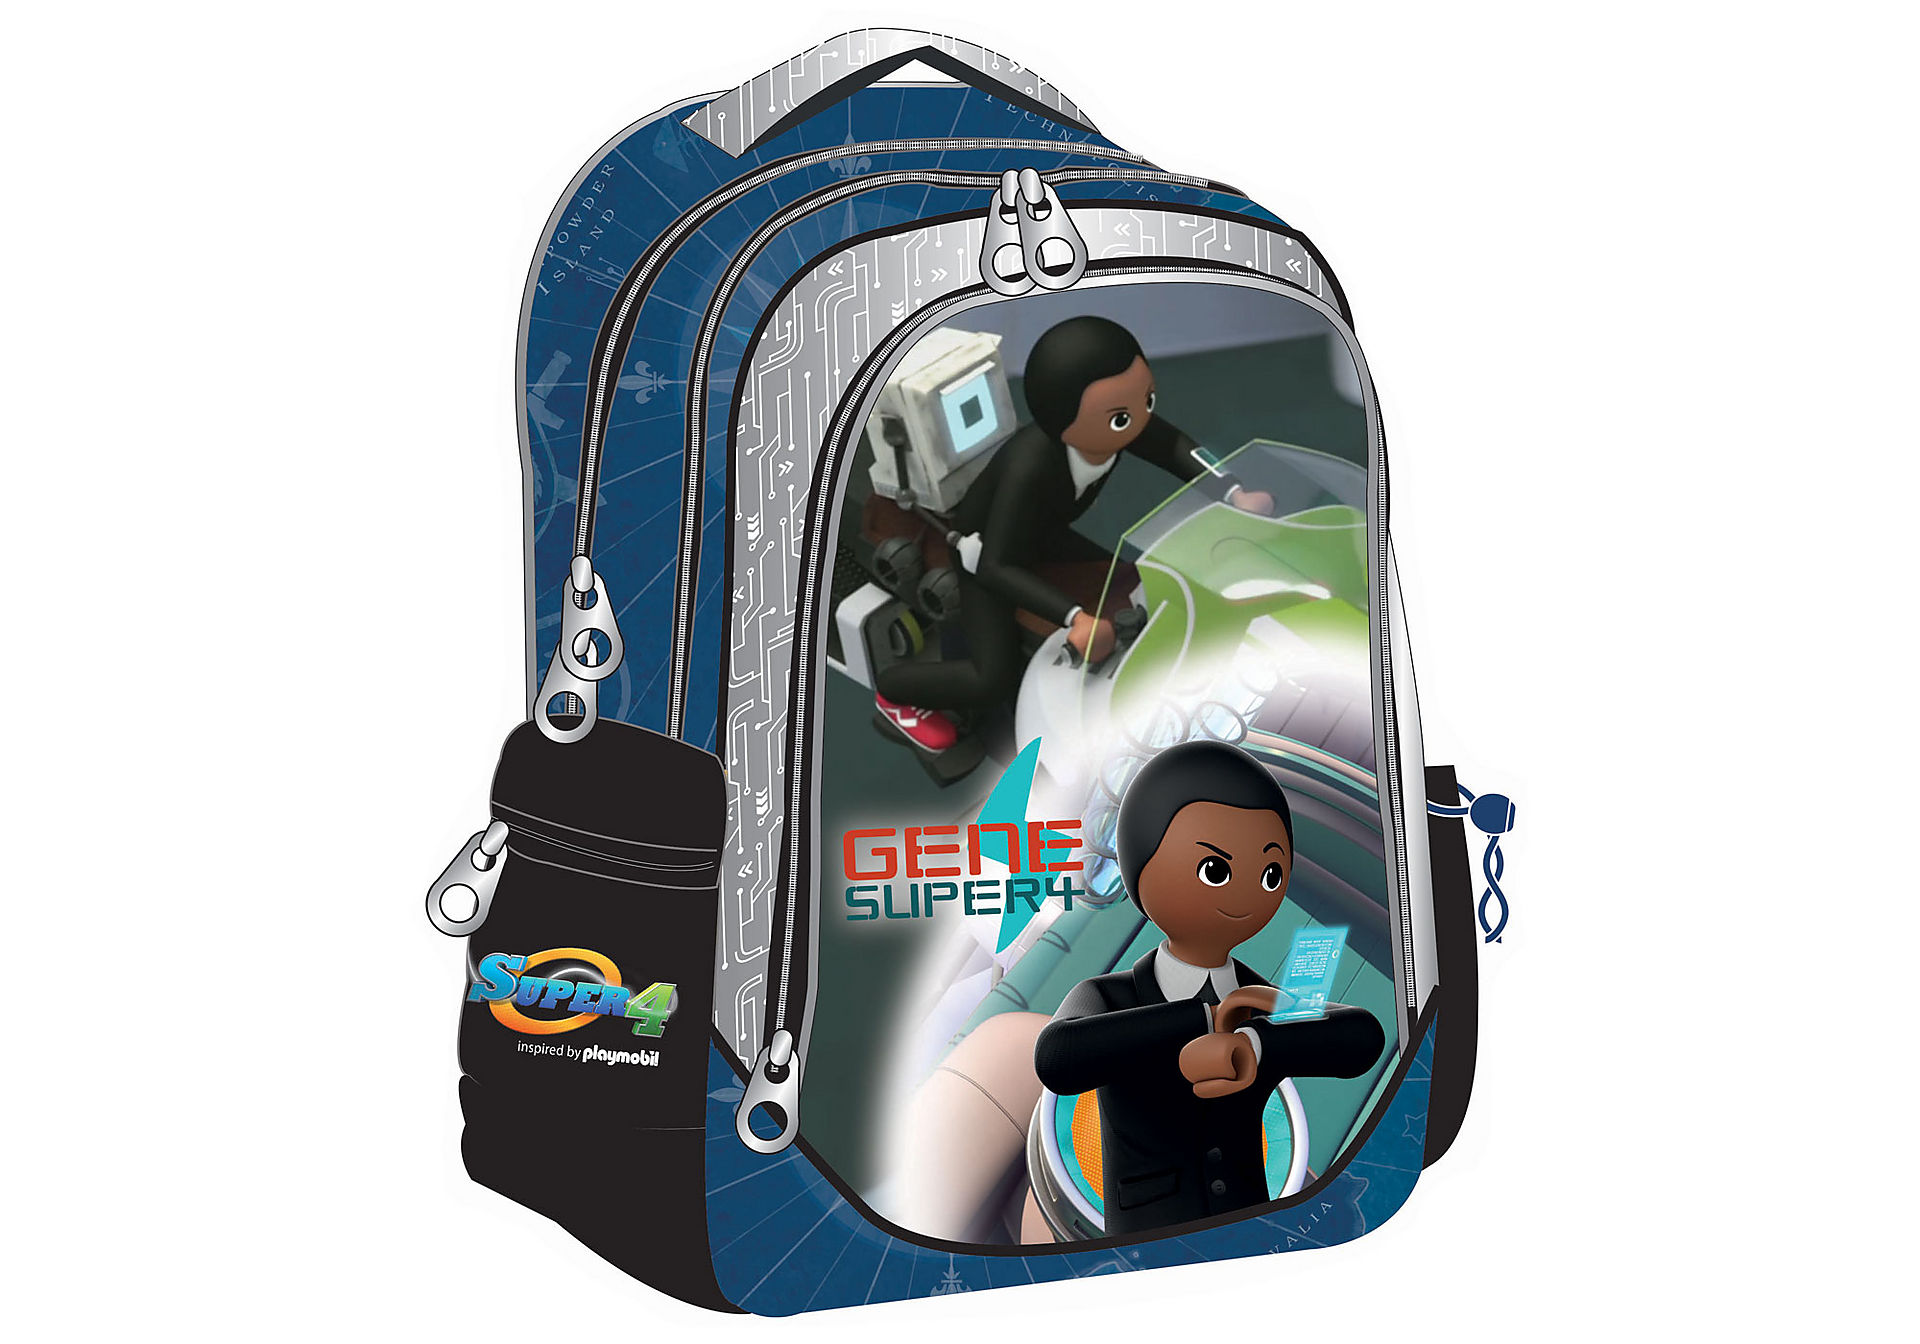 http://media.playmobil.com/i/playmobil/80064_product_detail/Kinder-Rucksack - Super 4 Gene